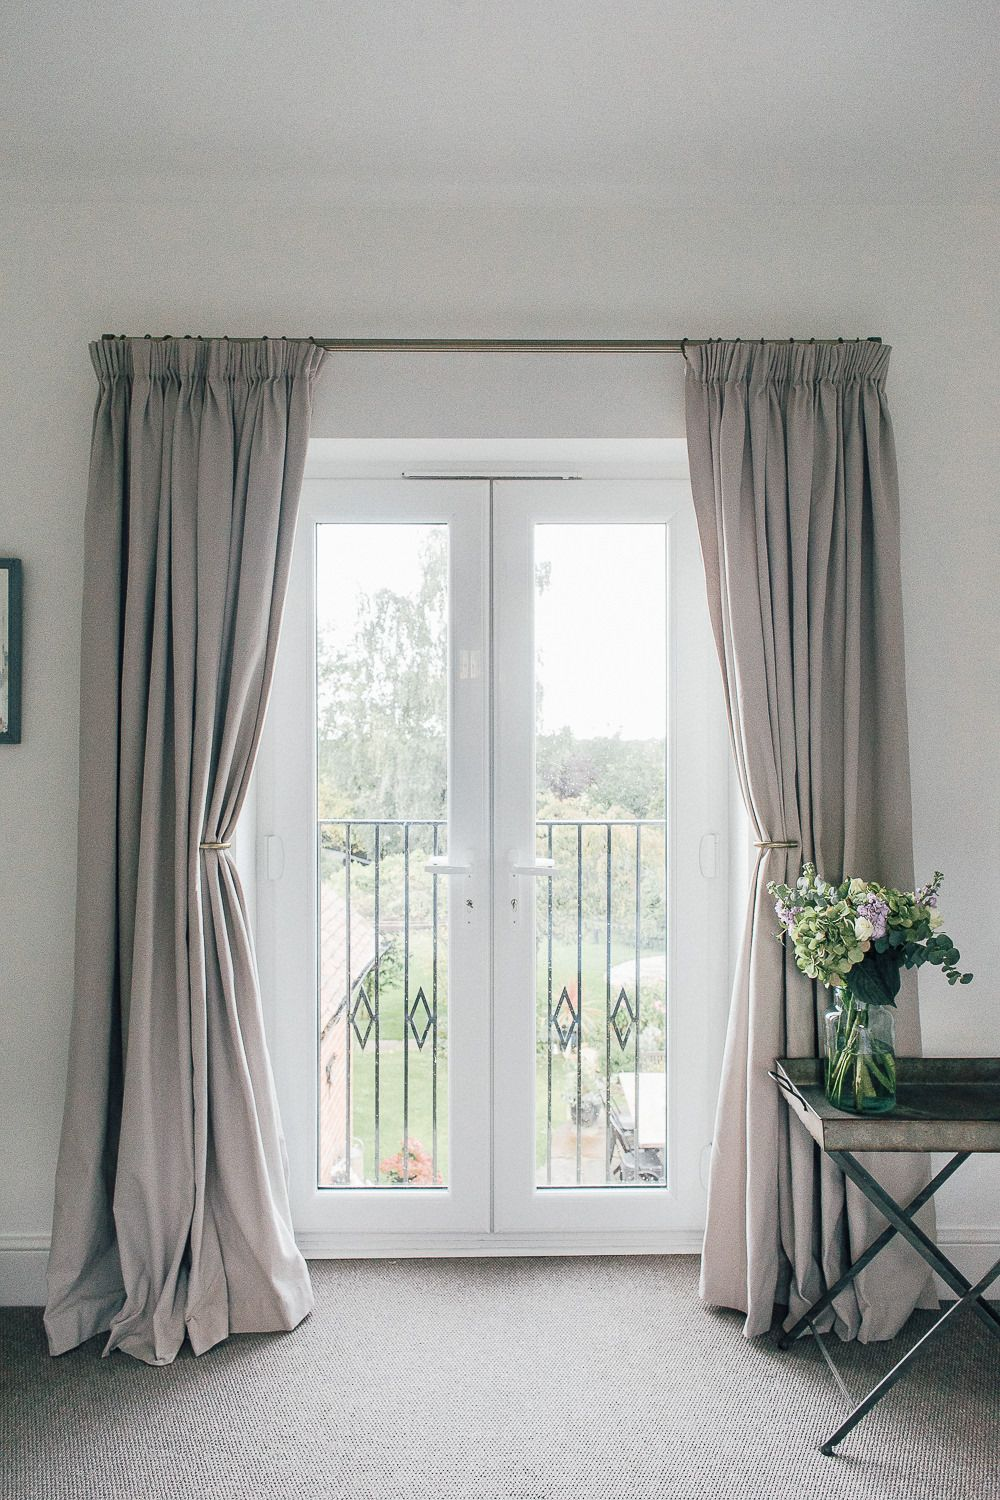 A Guide To Hanging Curtains With Laura Ashley